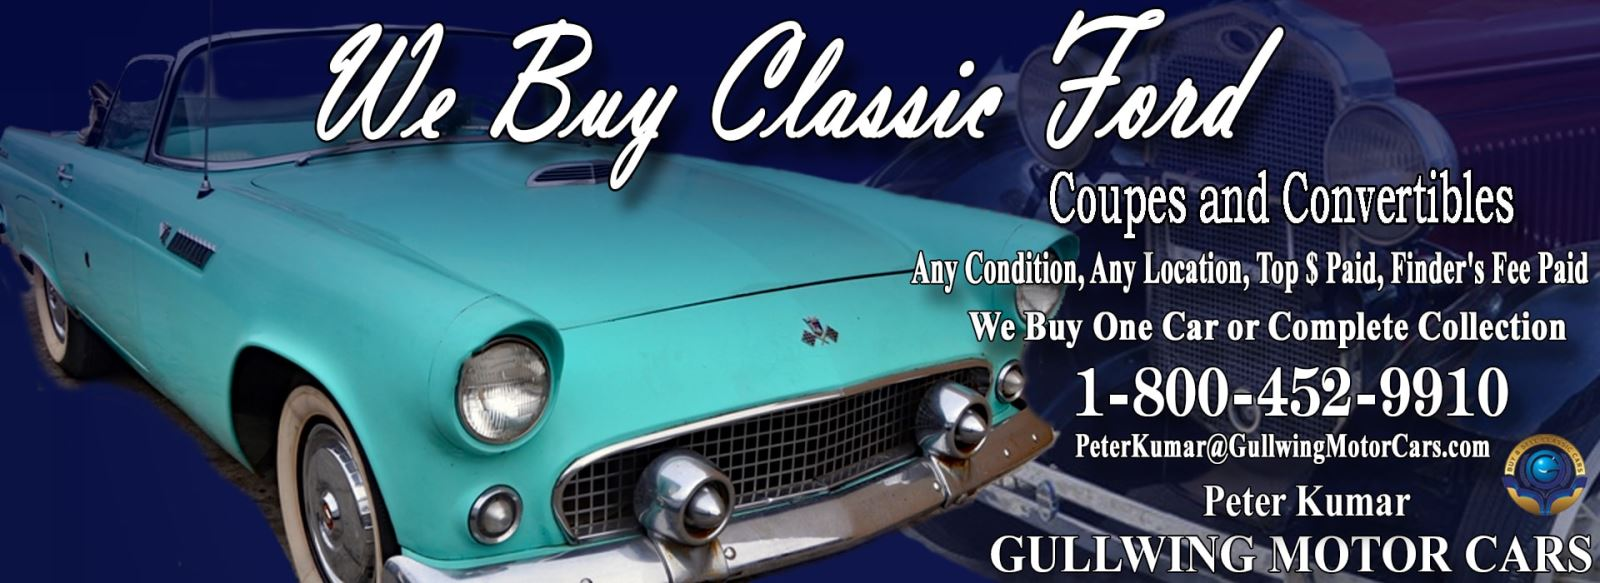 Classic Ford Thunderbird for sale, we buy vintage Ford Thunderbird. Call Peter Kumar. Gullwing Motor